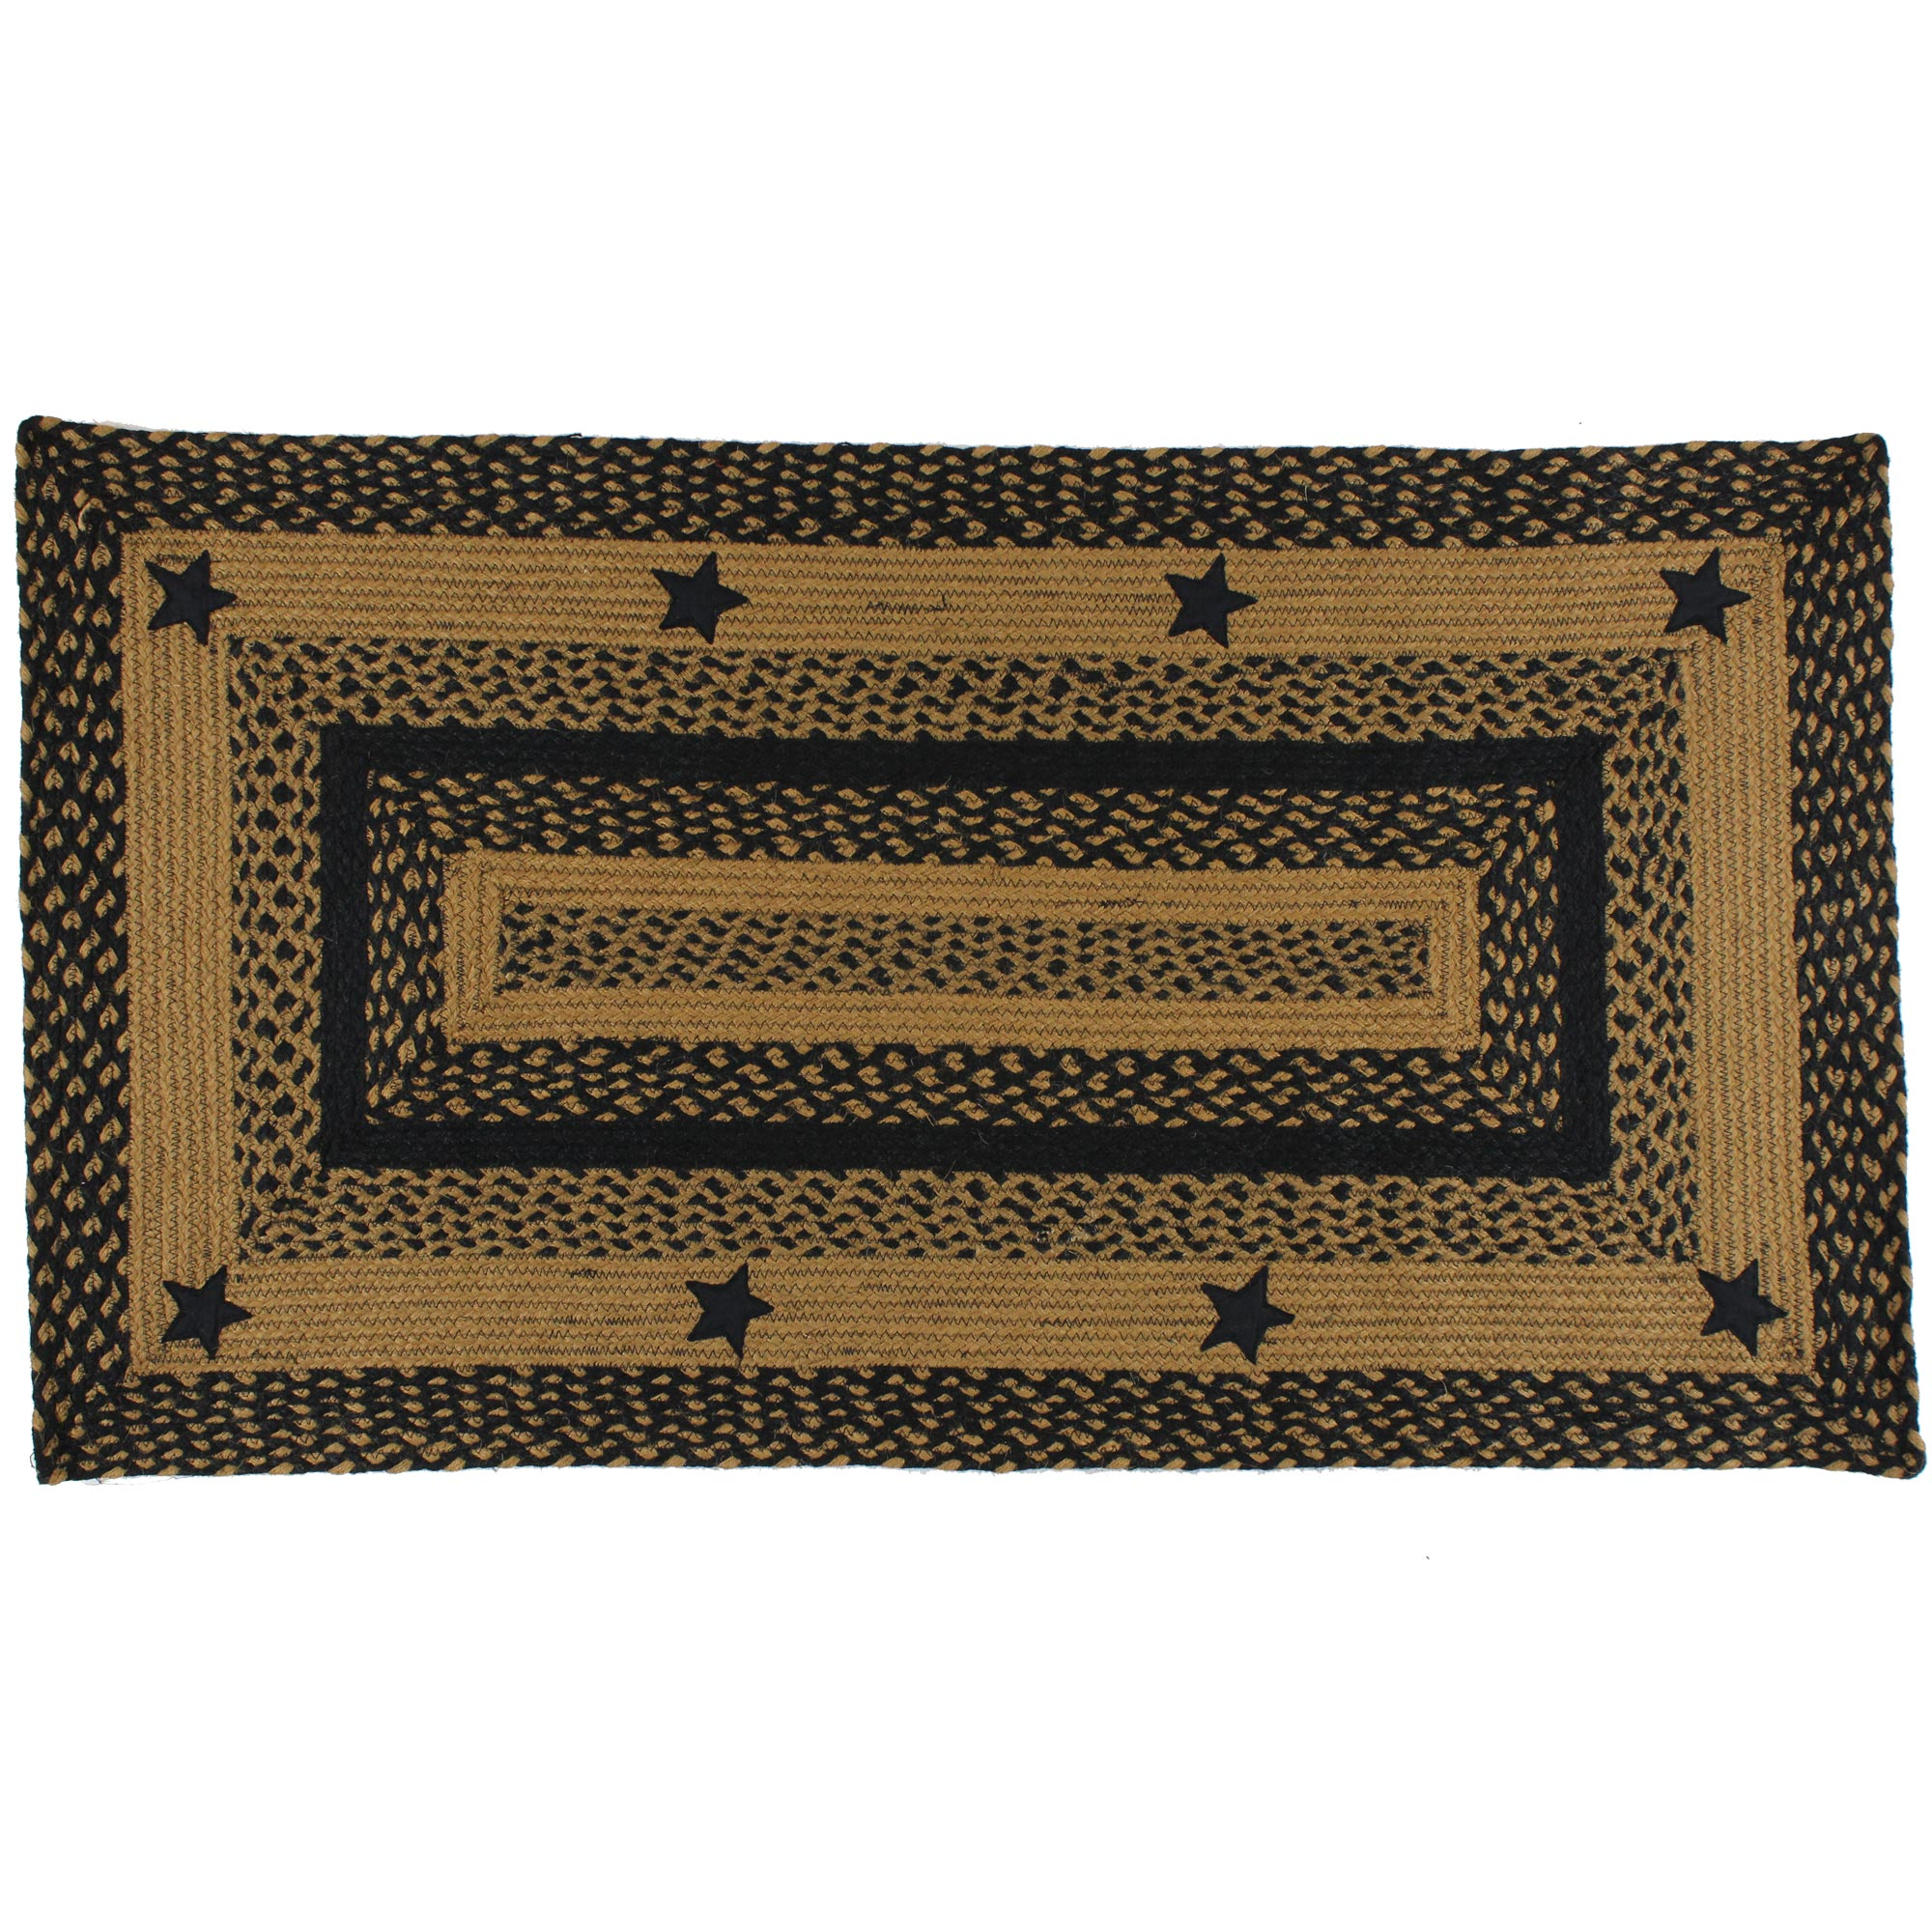 black and tan braided rug with stars primitive country. Black Bedroom Furniture Sets. Home Design Ideas